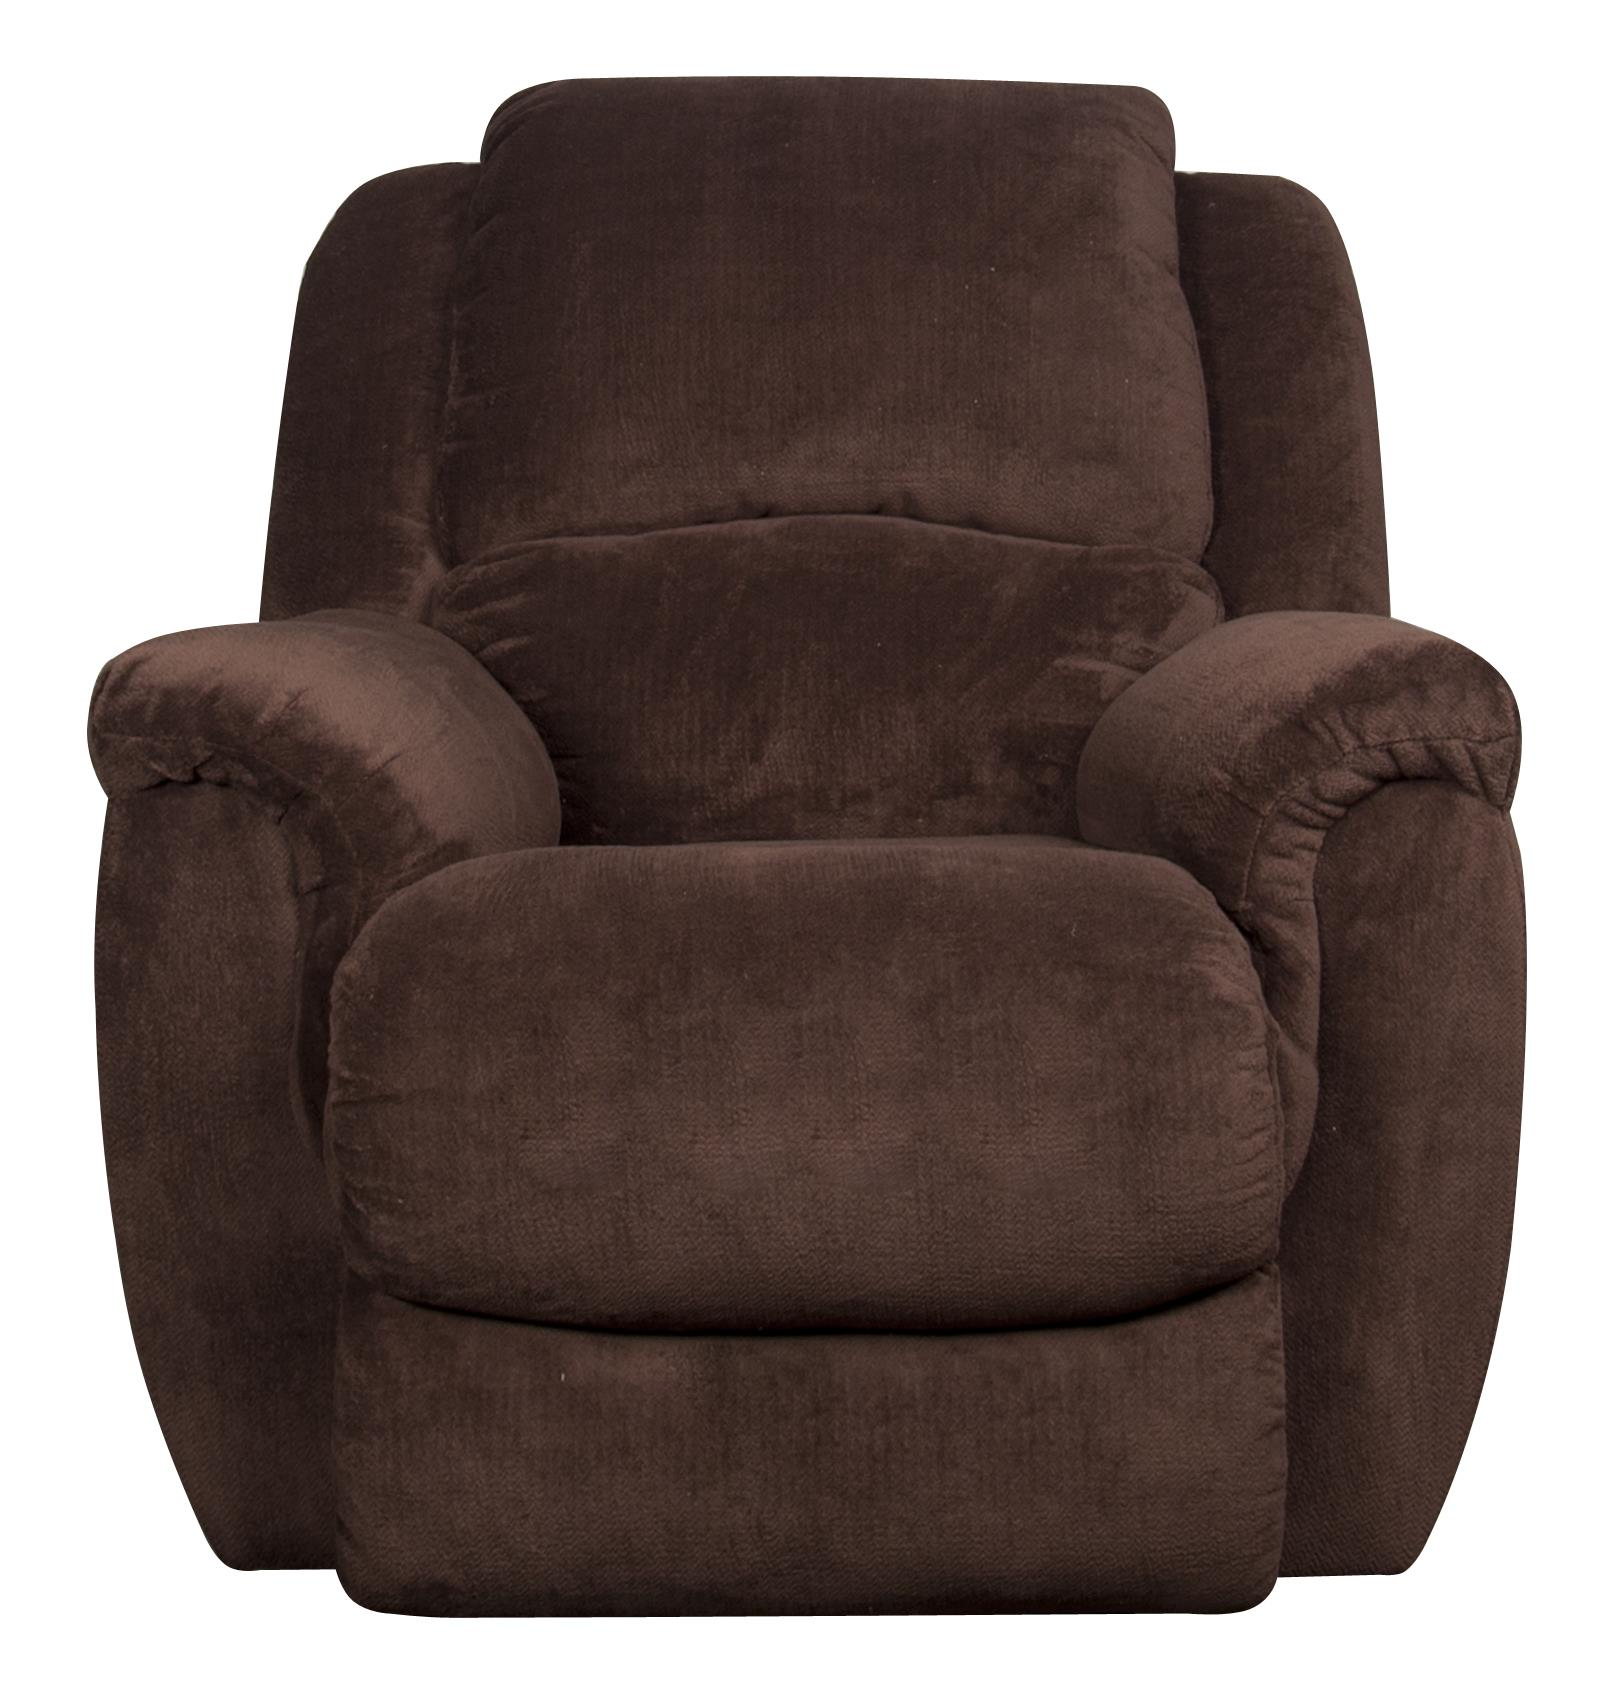 Morris Home Furnishings David David Power Recliner - Item Number: 263850243